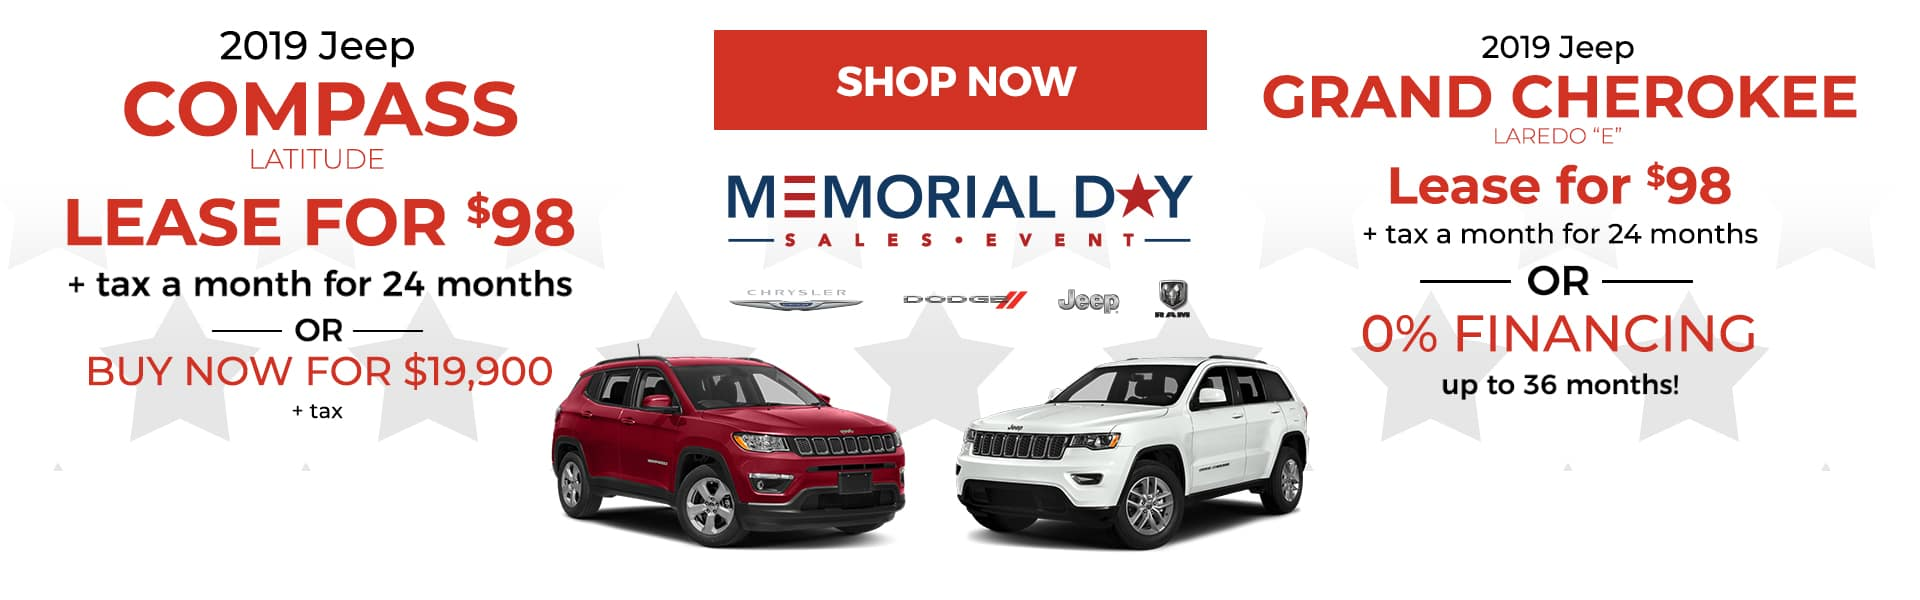 JEEP Memorial Day Offers